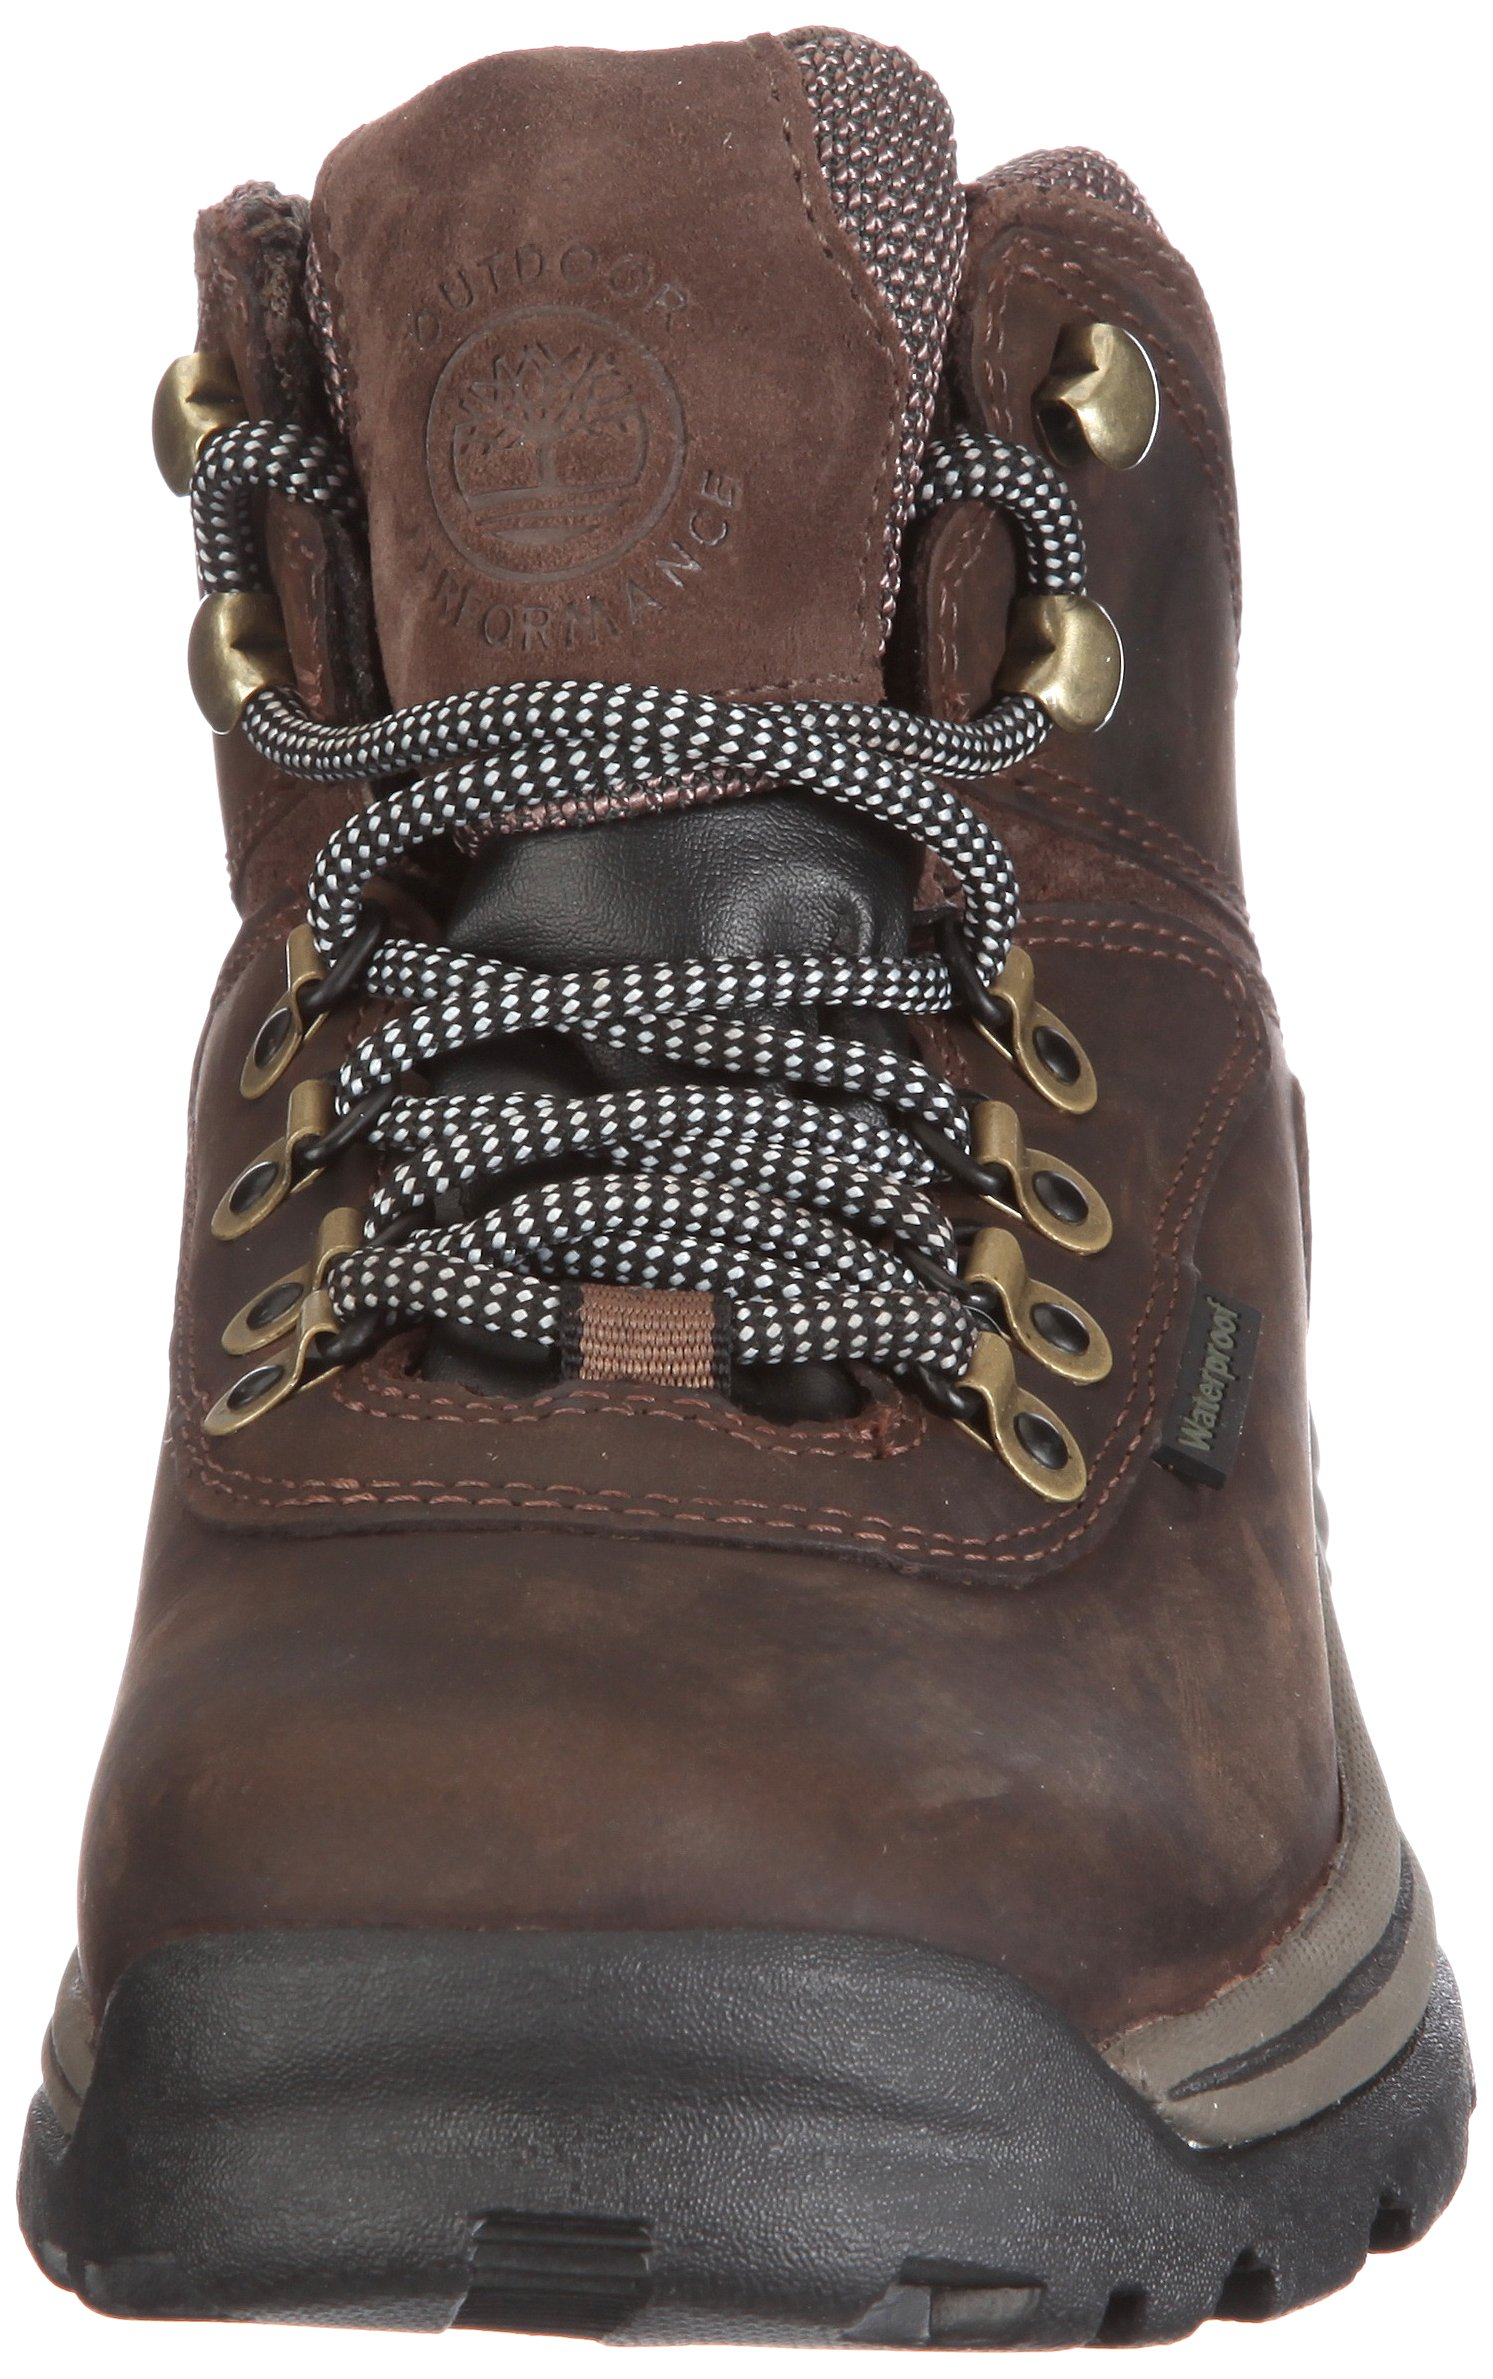 Timberland Women's White Ledge Mid Ankle Boot,Brown,9.5 W US by Timberland (Image #4)